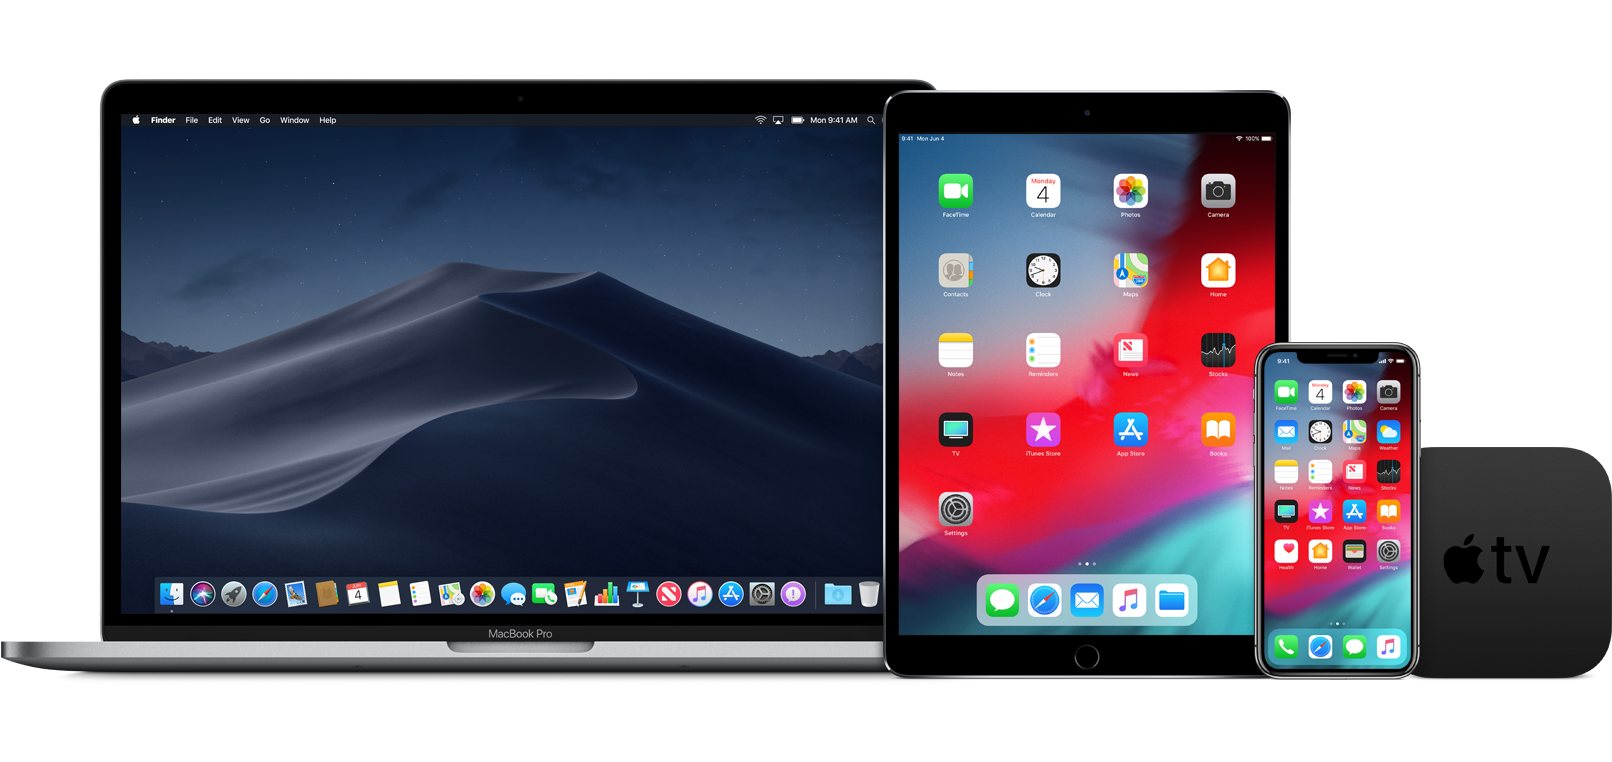 MacBook Pro, iPad, iPhone X e Apple TV rodando sistemas beta